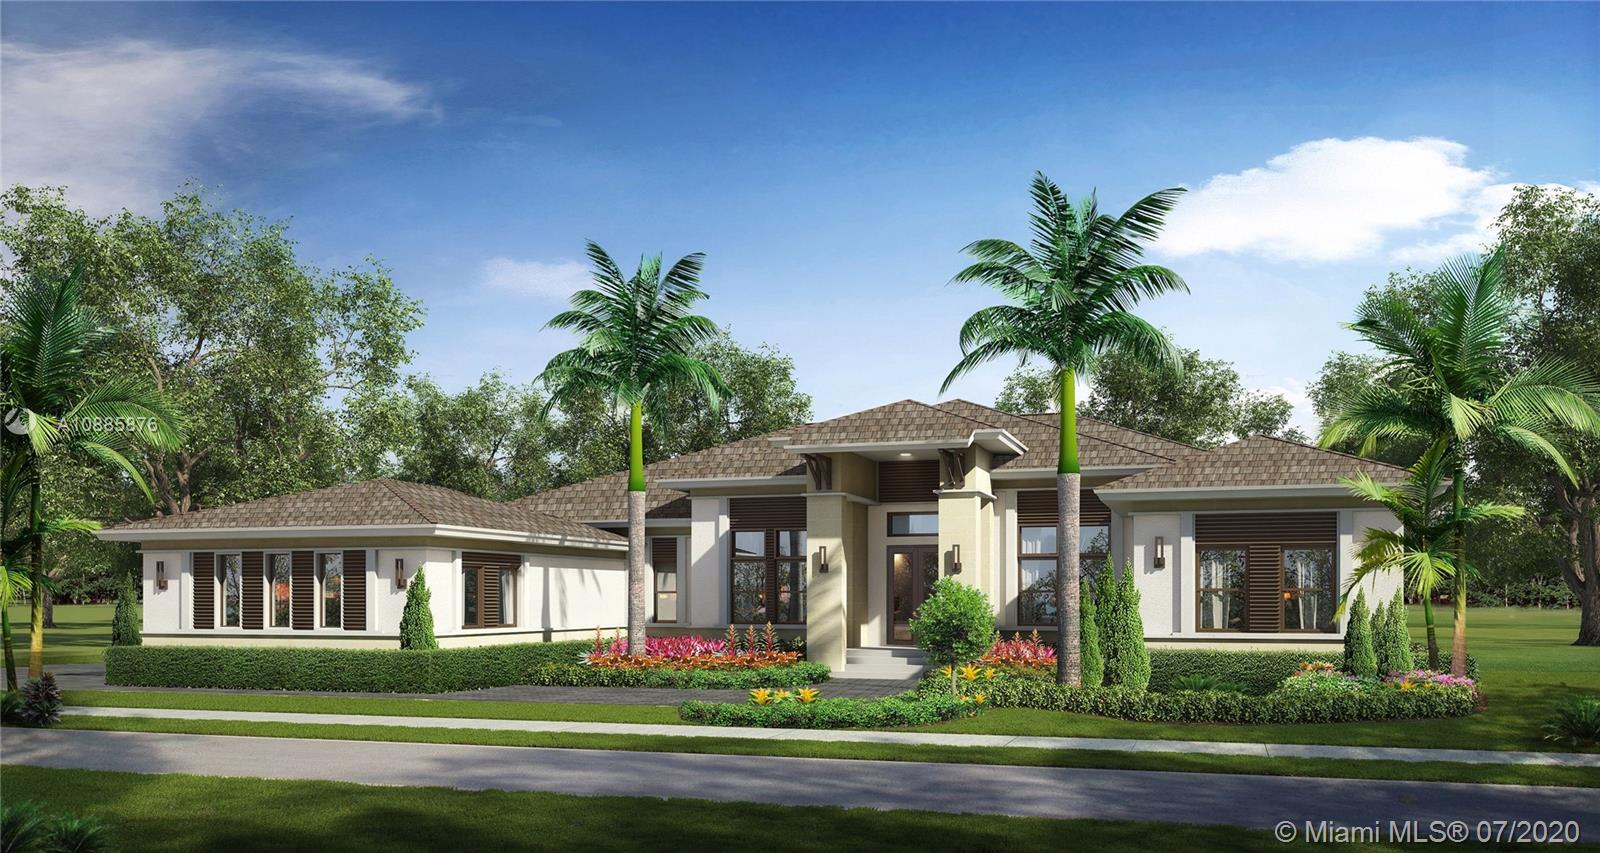 1520 SW 149  For Sale A10885876, FL